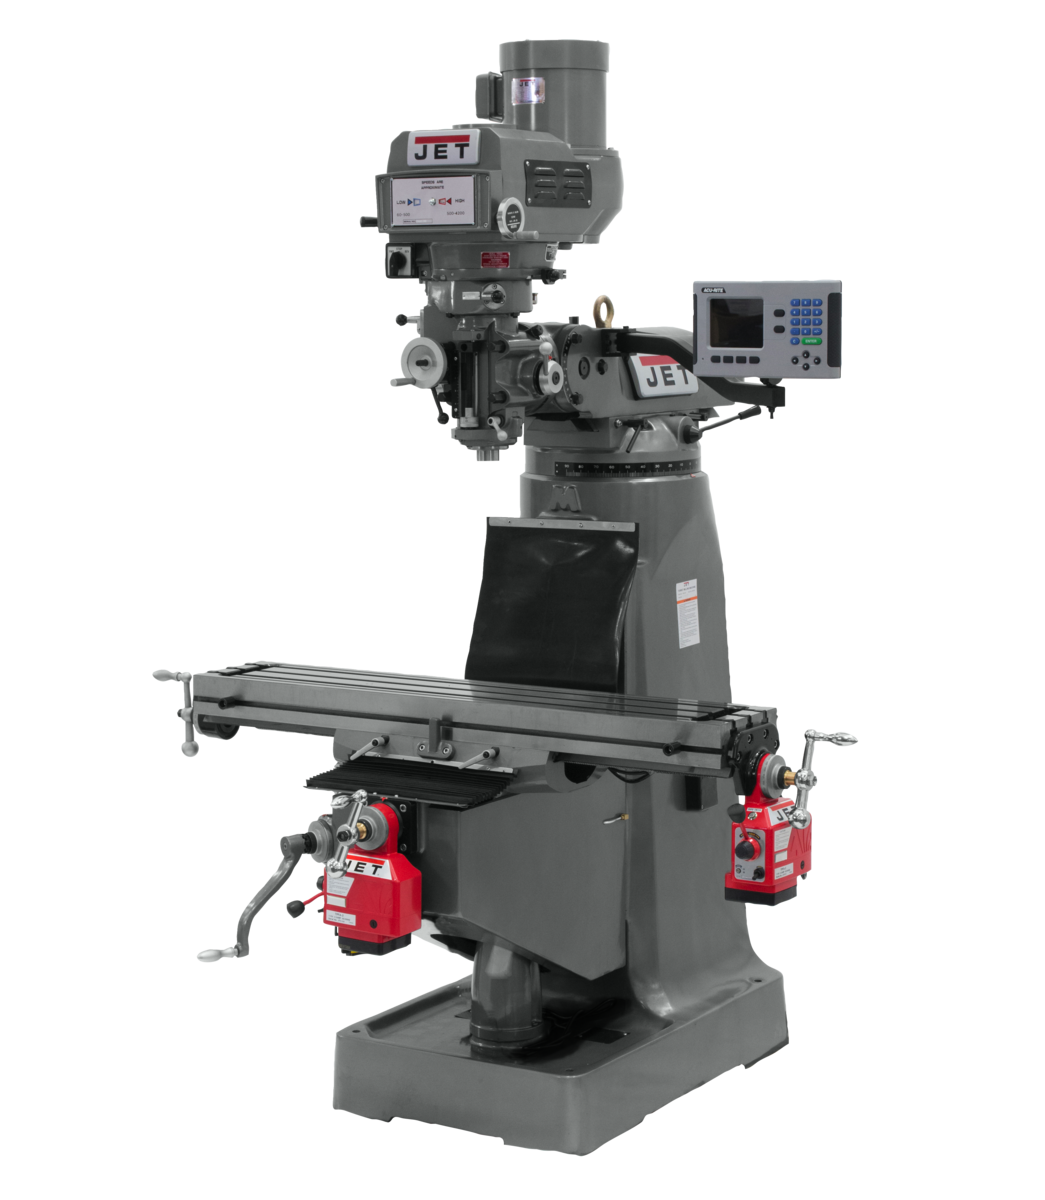 JTM-4VS Mill With ACU-RITE 203 DRO With X and Y-Axis Powerfeeds